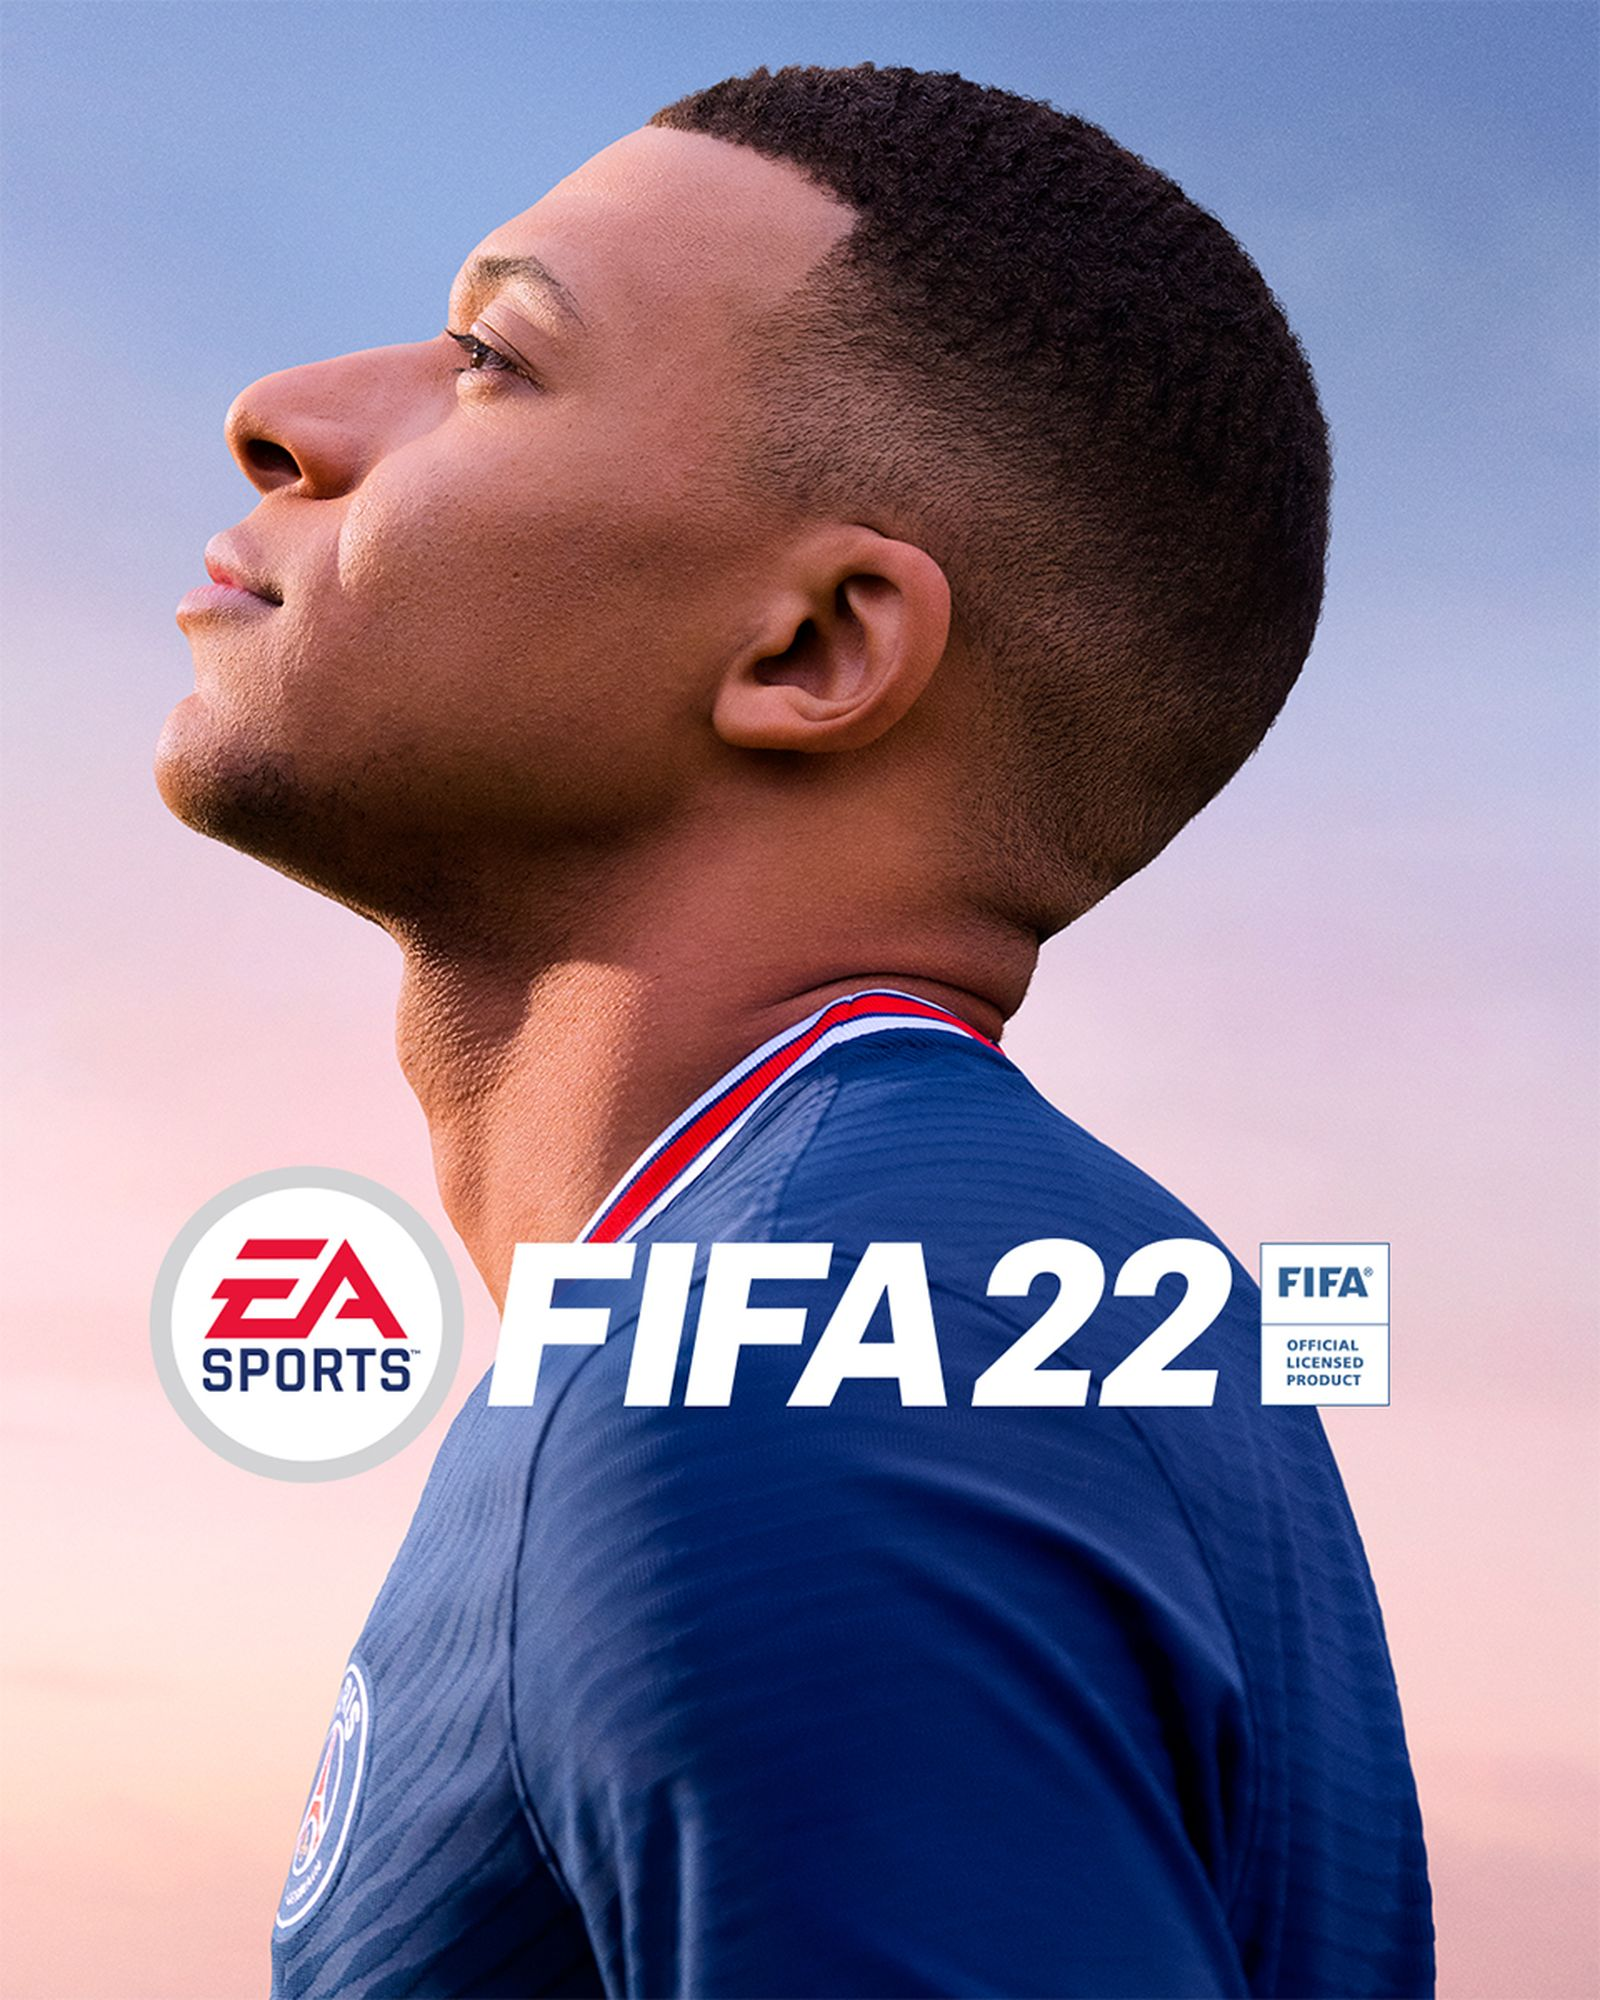 kylian-mbappe-fifa-22-cover-athlete-01